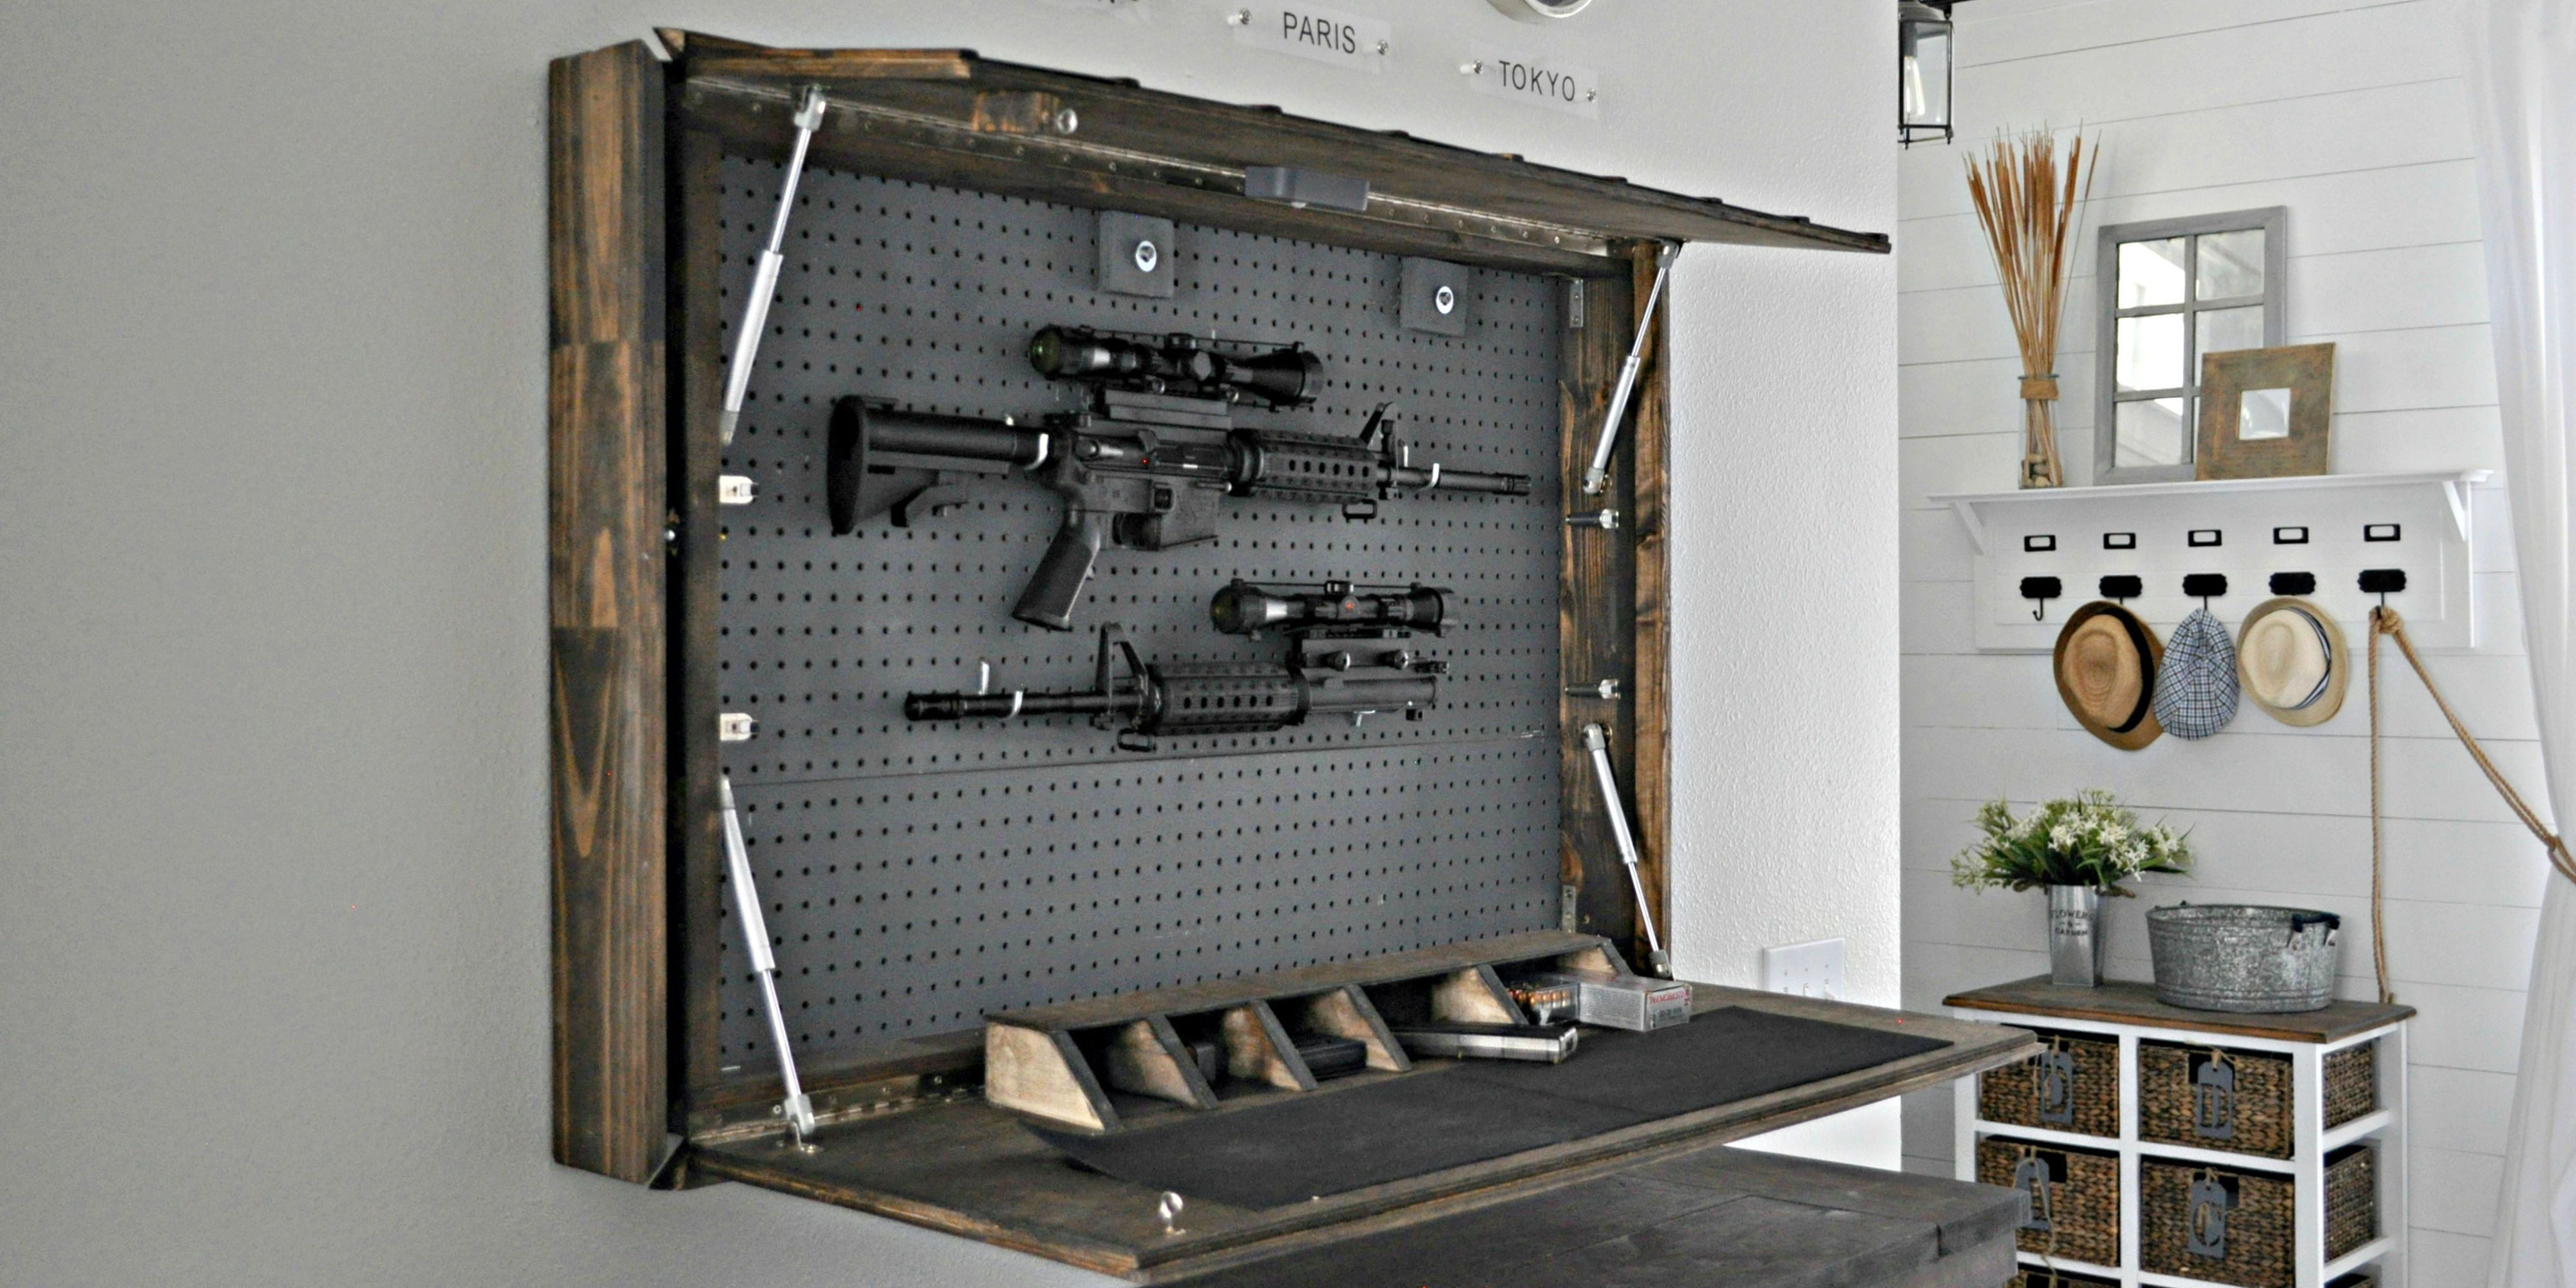 Gun Safes Are Great For Securing Firearms, But Not So Great When You Need  Quick Access. This Gun Compartment Doubles As A Living Room Mirror, ... Part 47